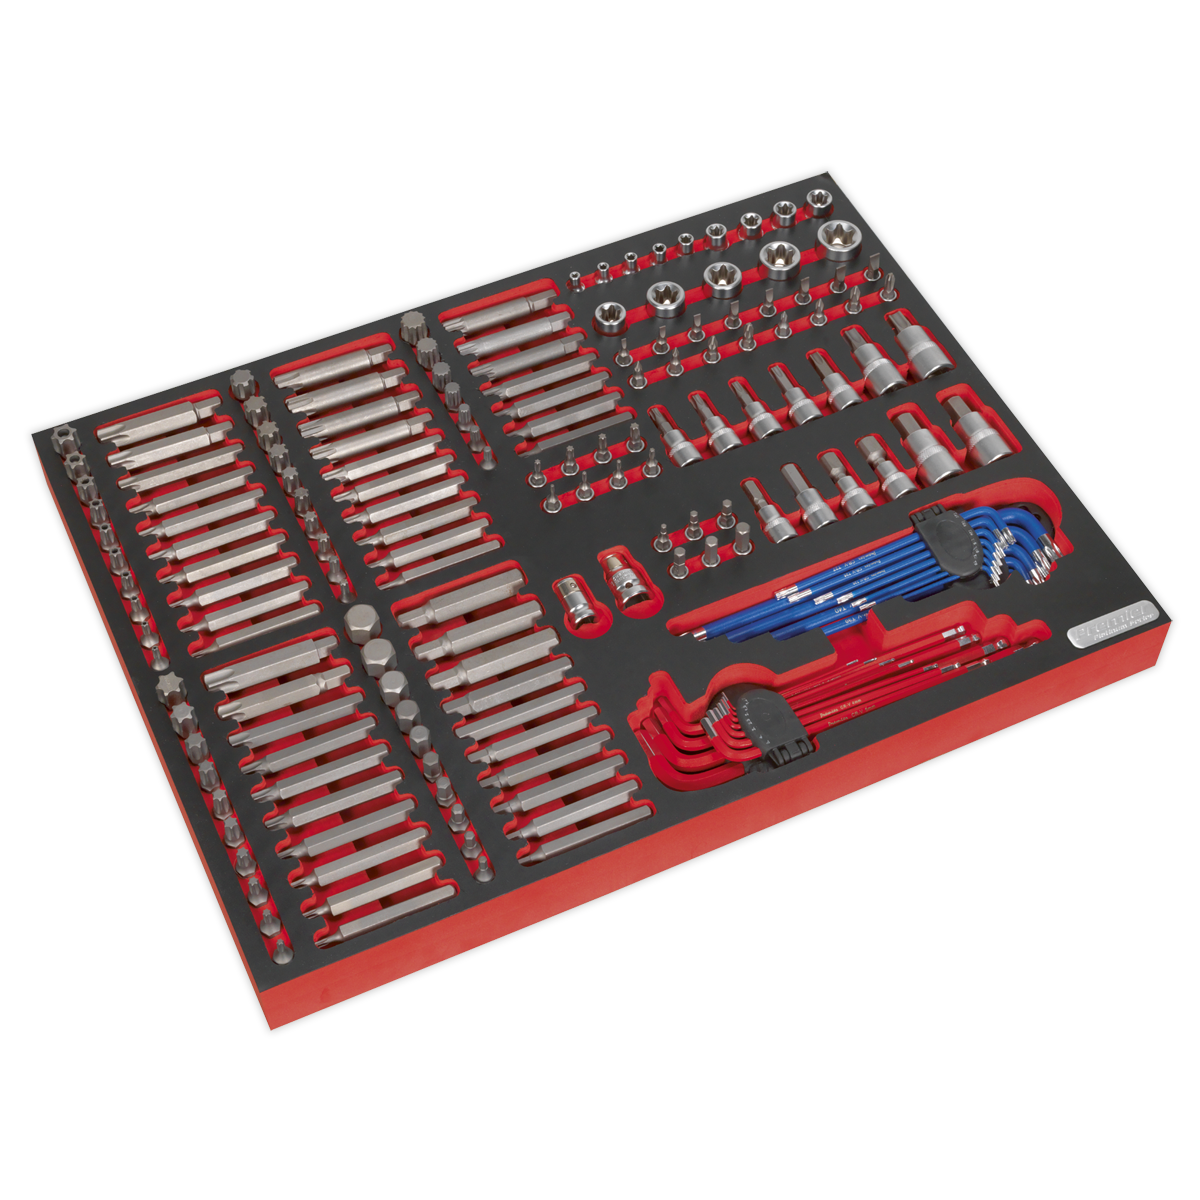 Tool Tray with Specialised Bits & Sockets 177pc